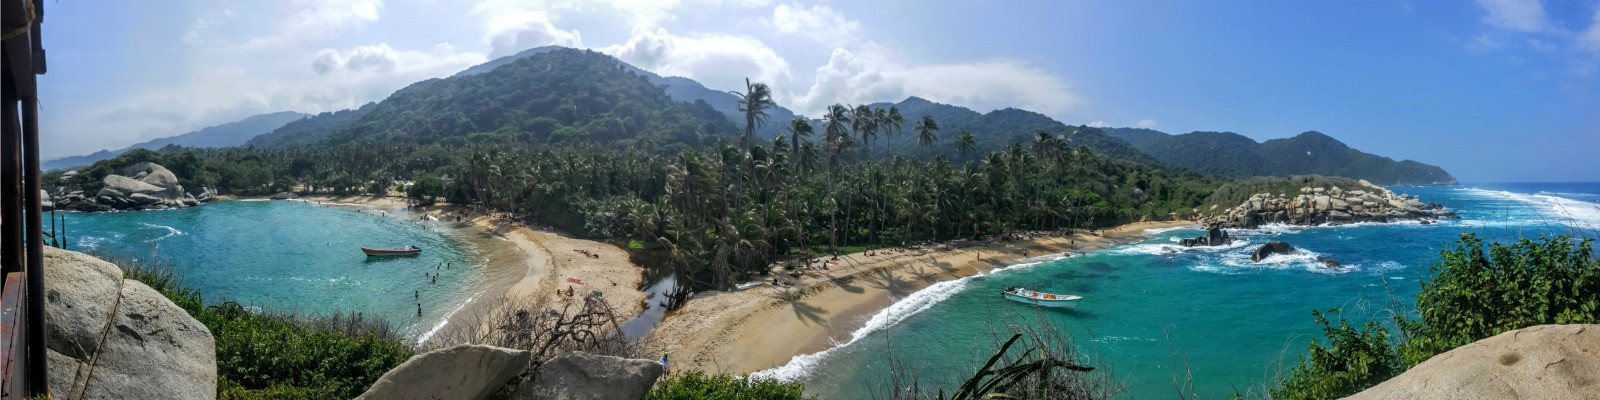 Tayrona National Park (Photo by Eli Duke)